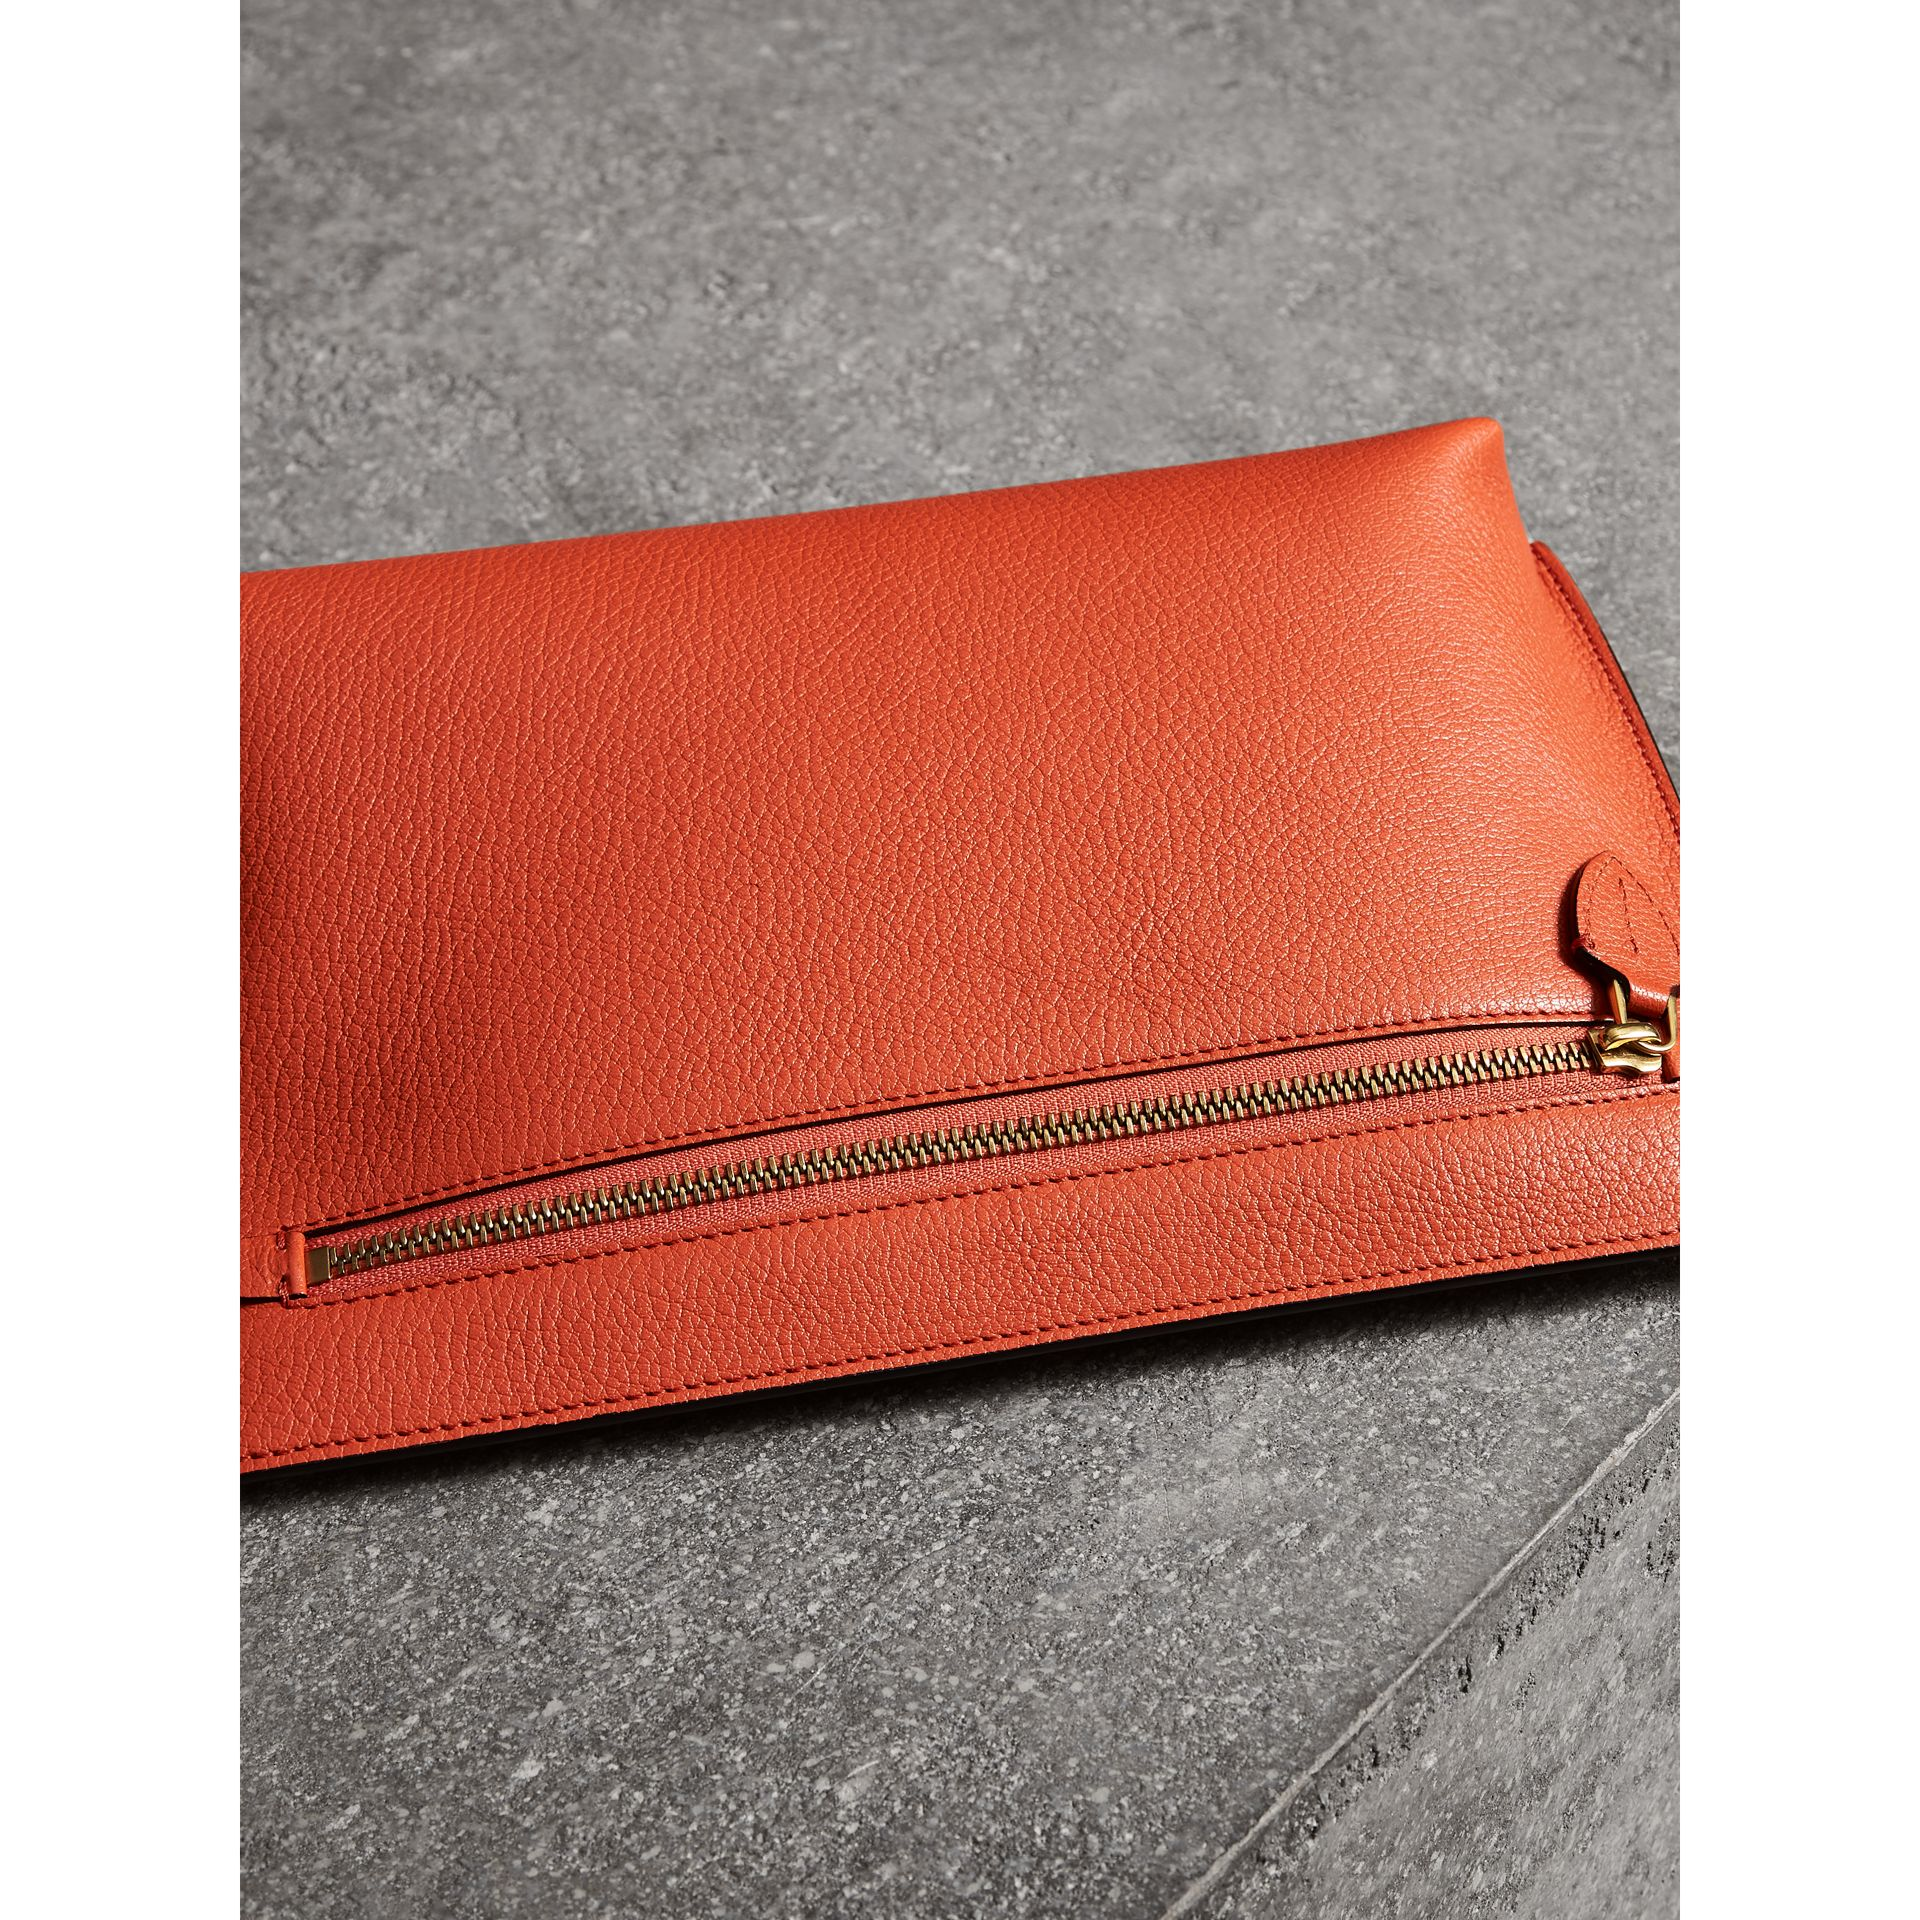 Grainy Leather Wristlet Clutch in Clementine - Women | Burberry - gallery image 7